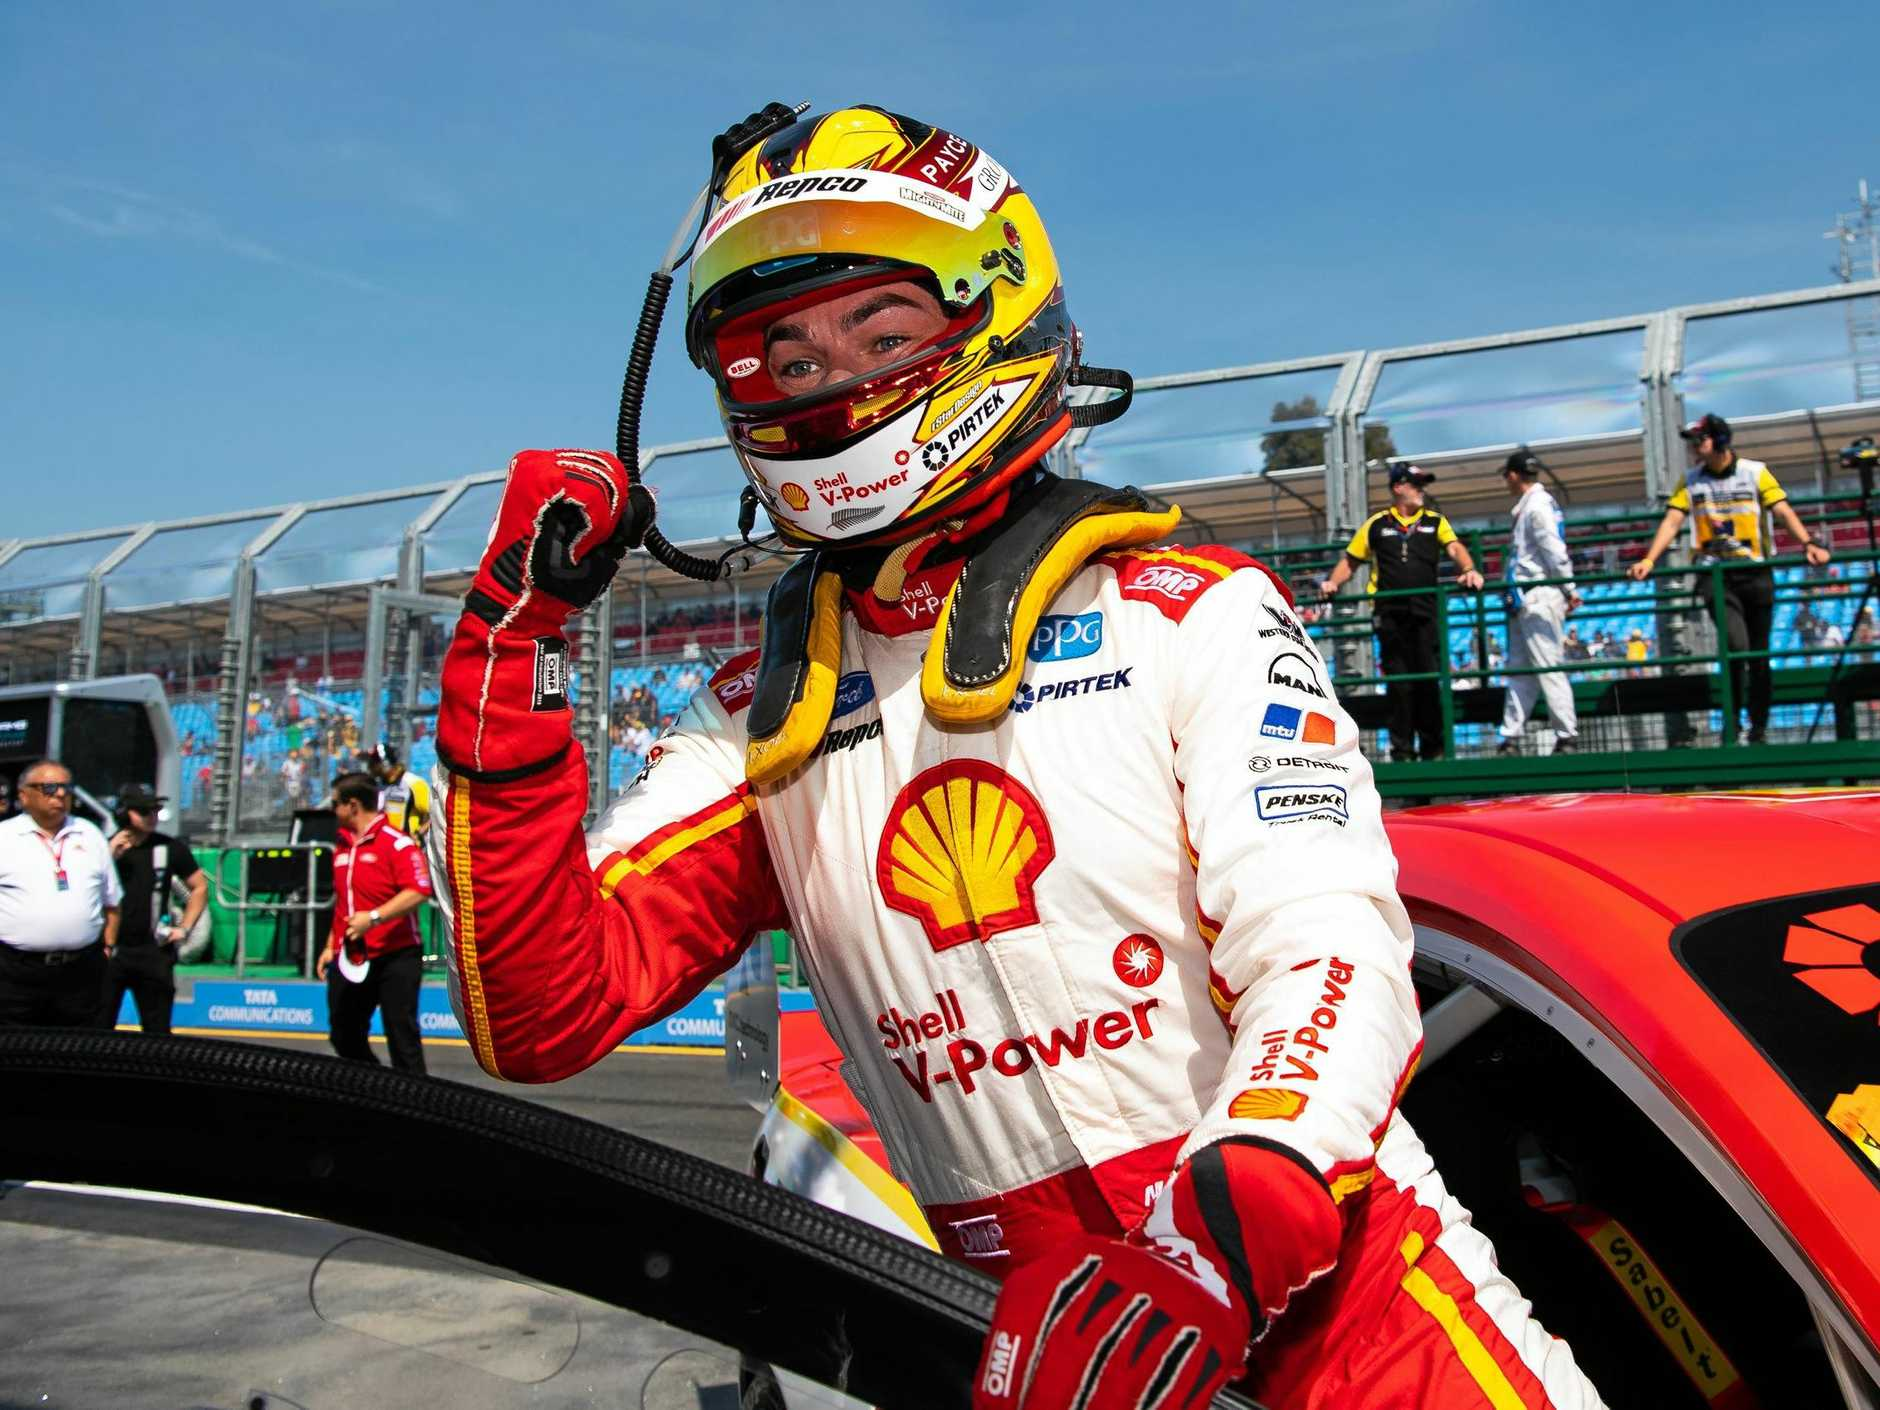 Scott McLaughlin shows his joy after winning race two of the Melbourne 400 Supercars Championship Round at Albert Park on Saturday.  Picture: Daniel Kalisz/Getty Images